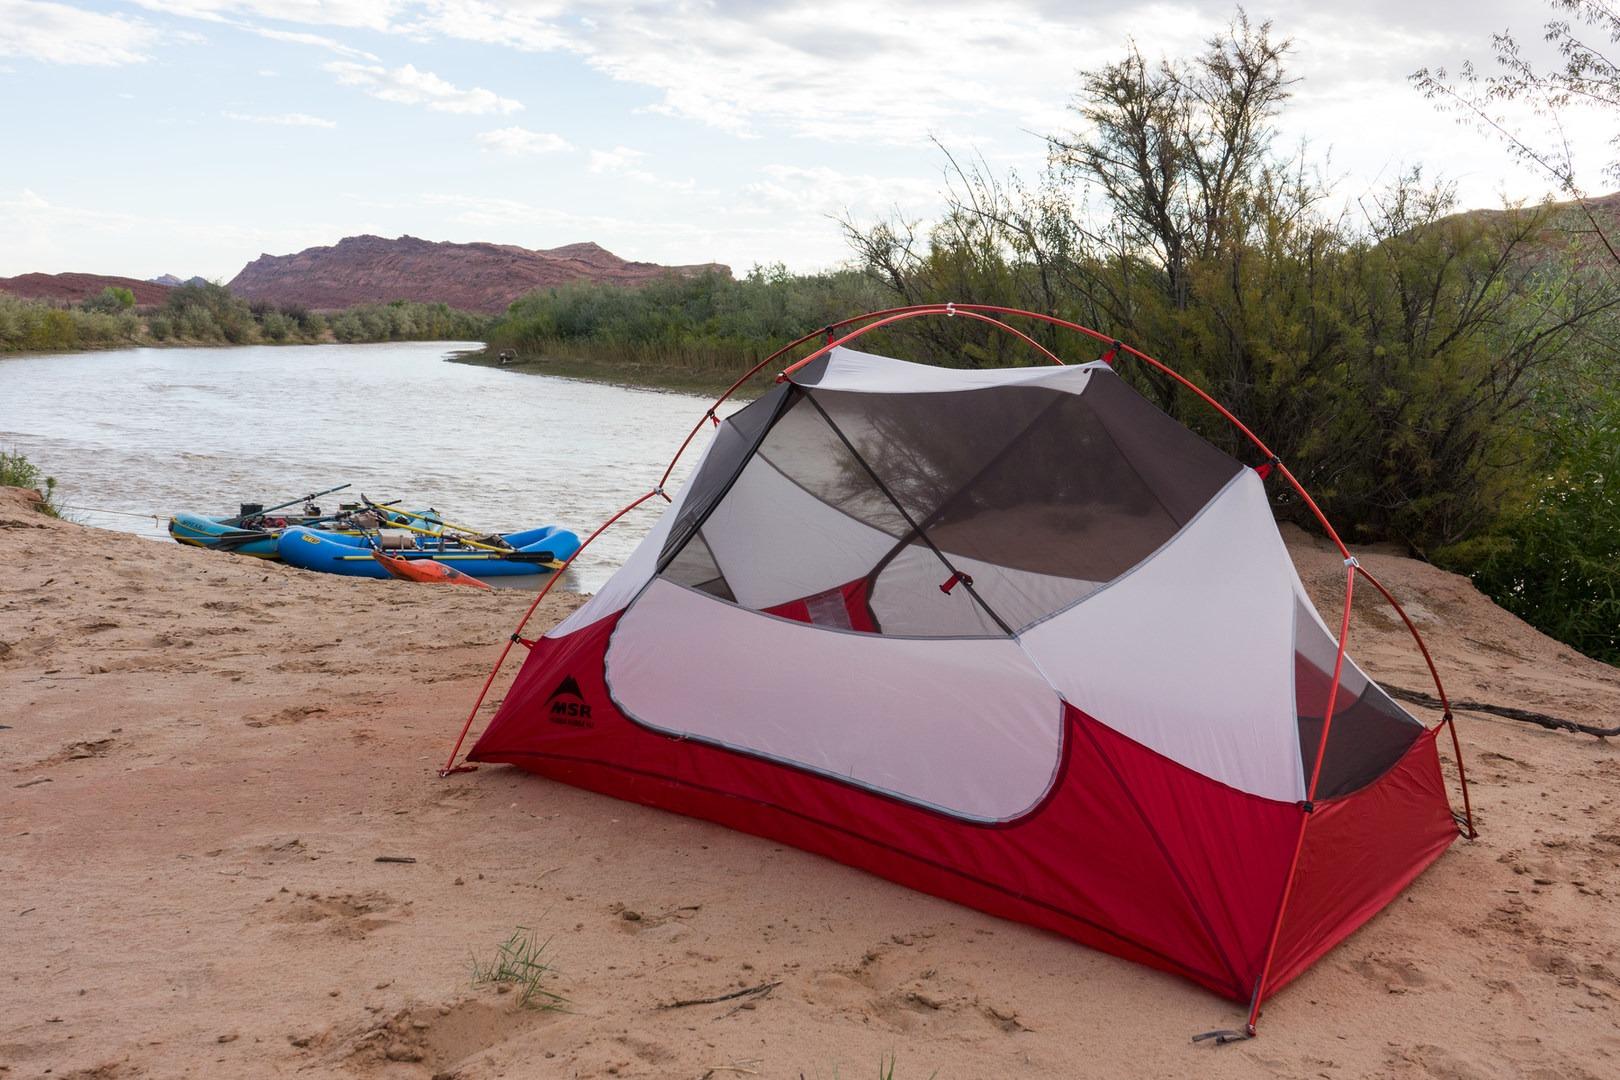 Gear Review Msr Hubba Hubba Nx 2 Tent Outdoor Project